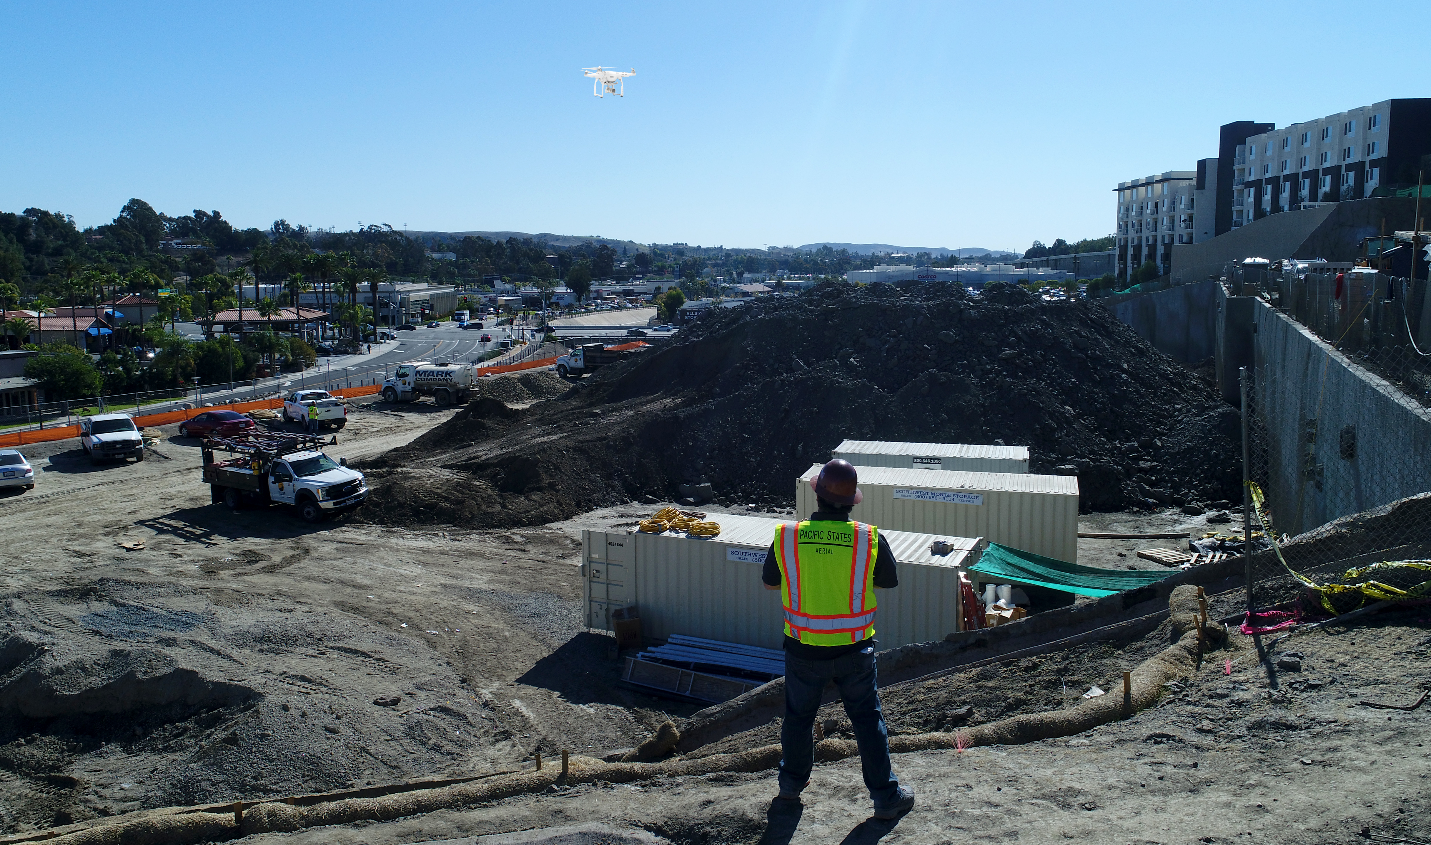 drone pilot flying drone over a stock pile at a construction site